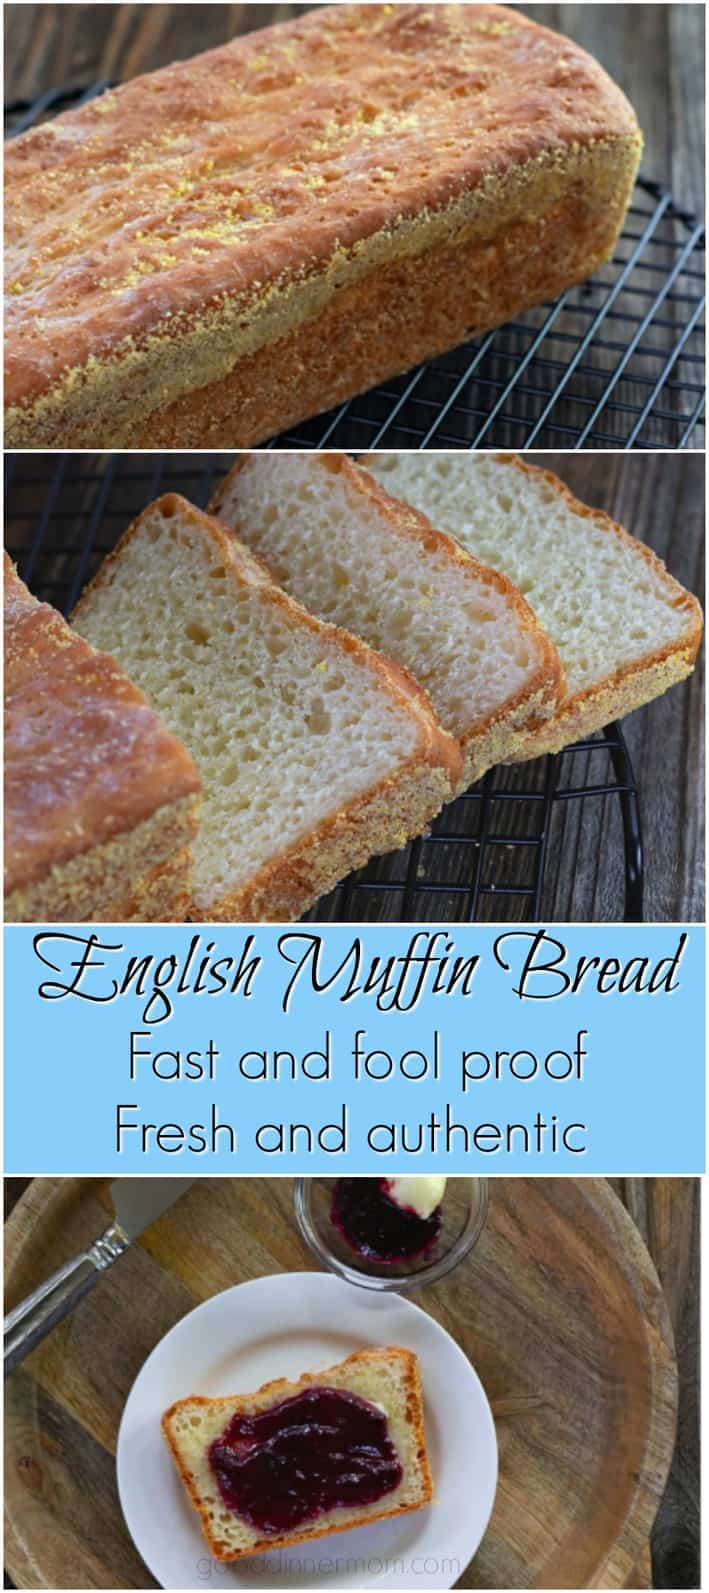 English Muffin Bread is ready in no time, tastes just like a fresh English muffin. Perfect for toasting, Benedicts, or sandwiches. #muffins #Englishmuffin #toast #eggsbenedict #sandwiches #breakfast #lunch #30minutesorless